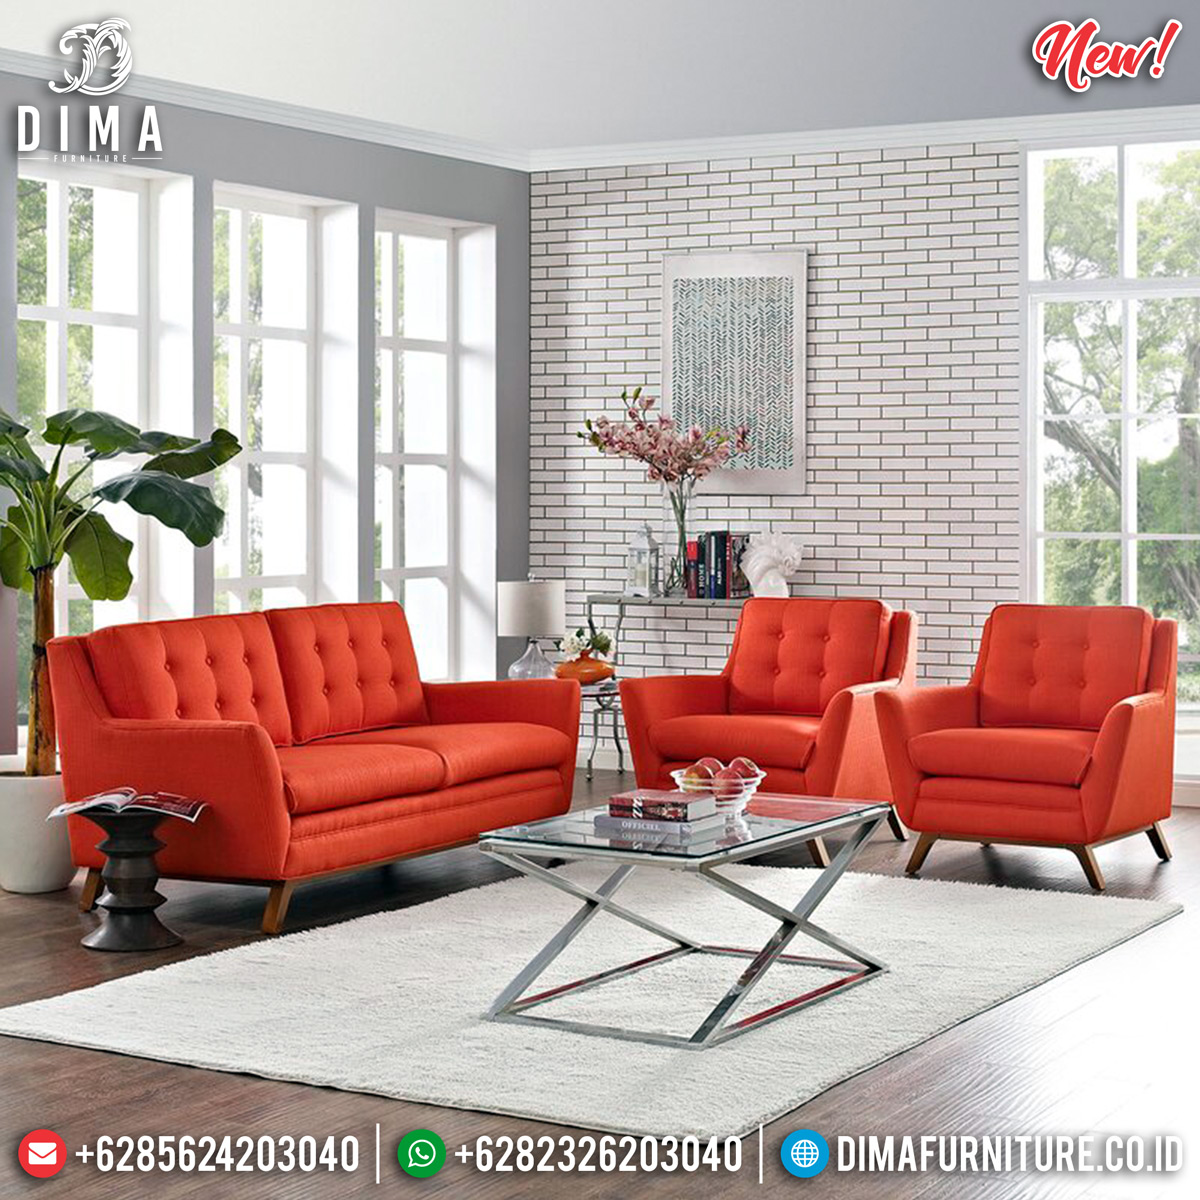 New Sofa Tamu Minimalis Jepara Red Fabric Natural Jati Bauman DF-1295